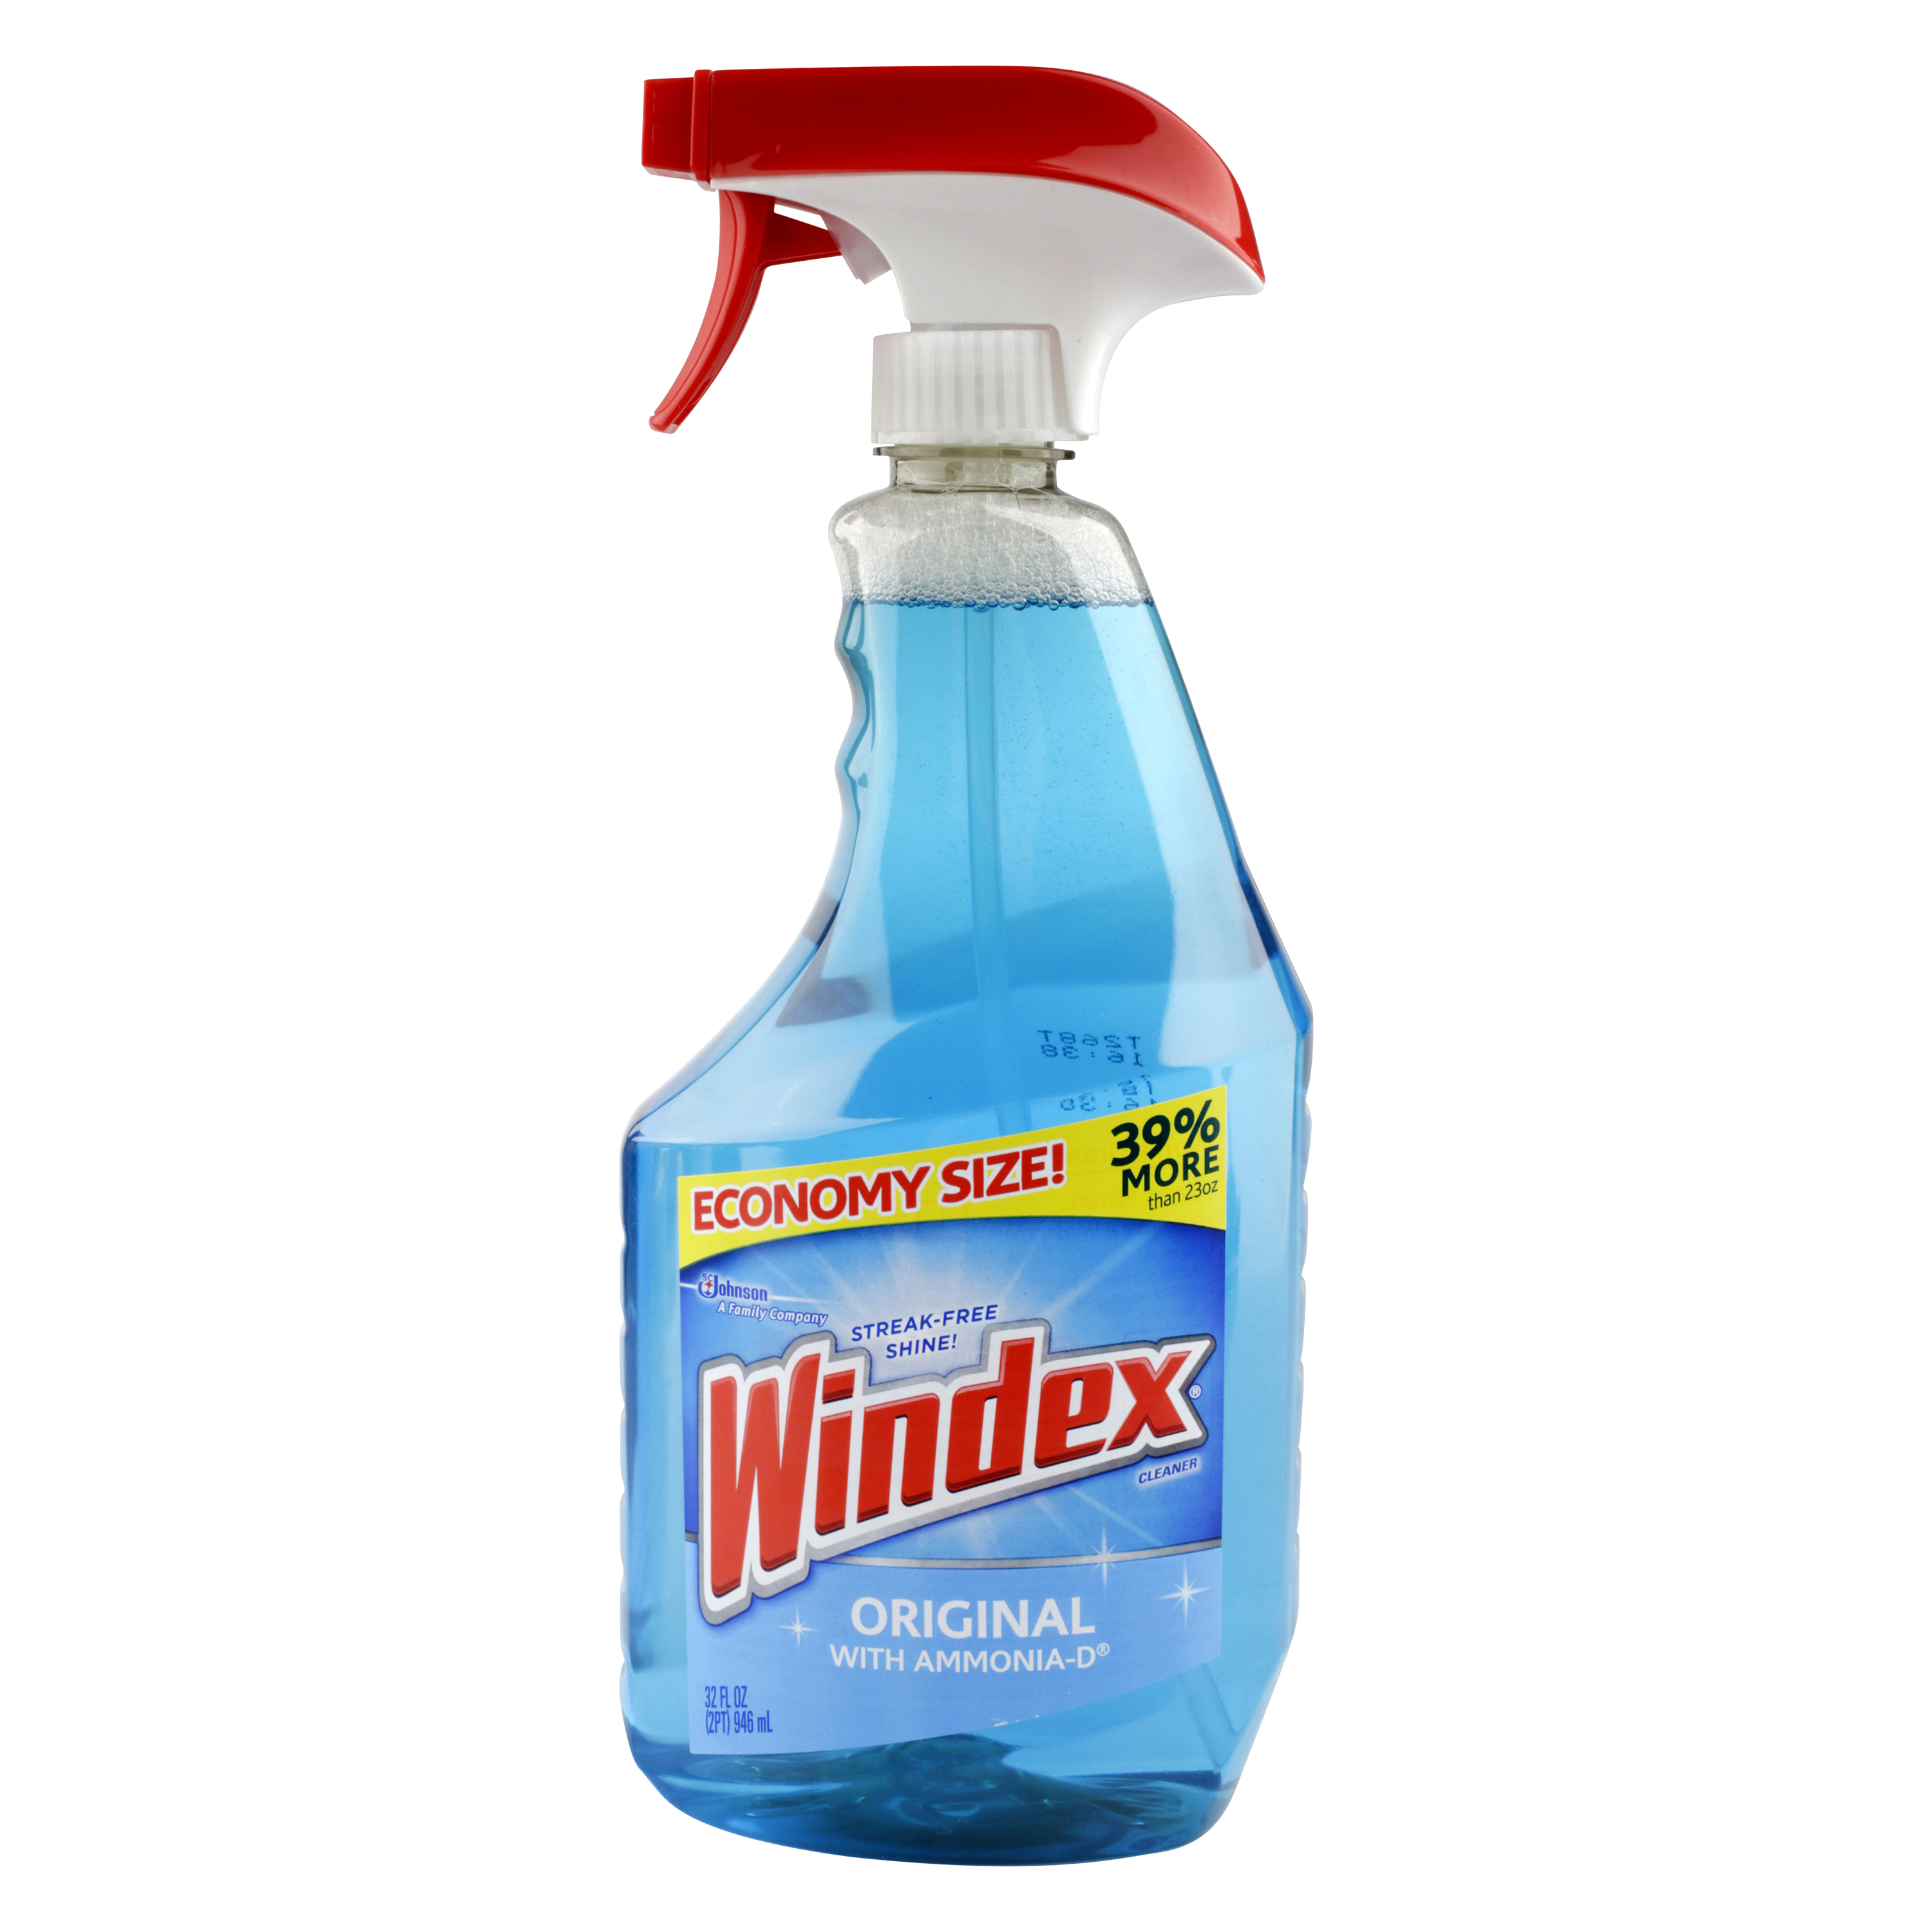 Windex Economy Size 32 fl. oz. Original with Ammonia D Trigger Bottle